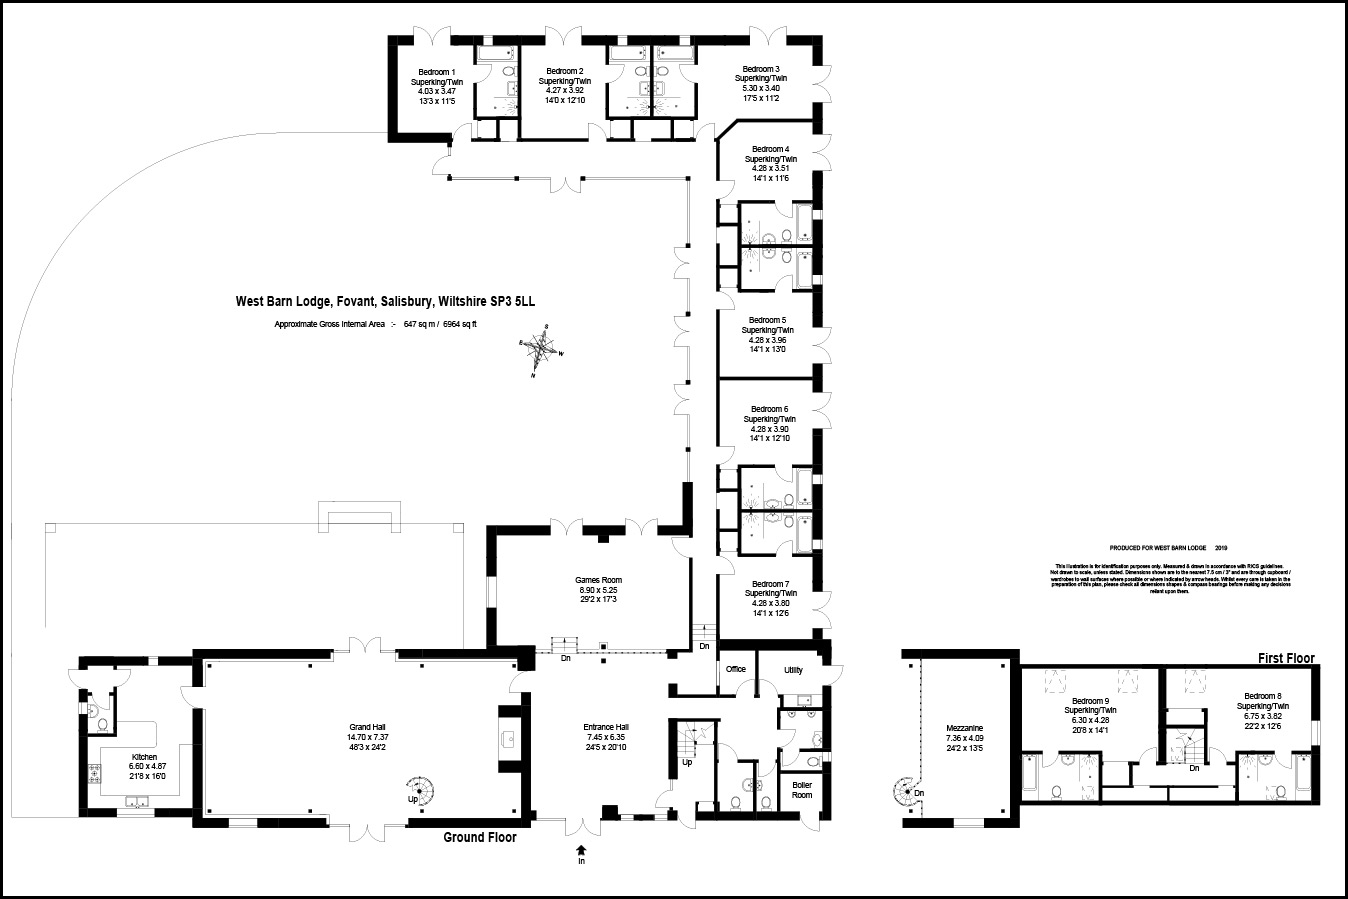 A1-West-Barn-Lodge-Floorplan